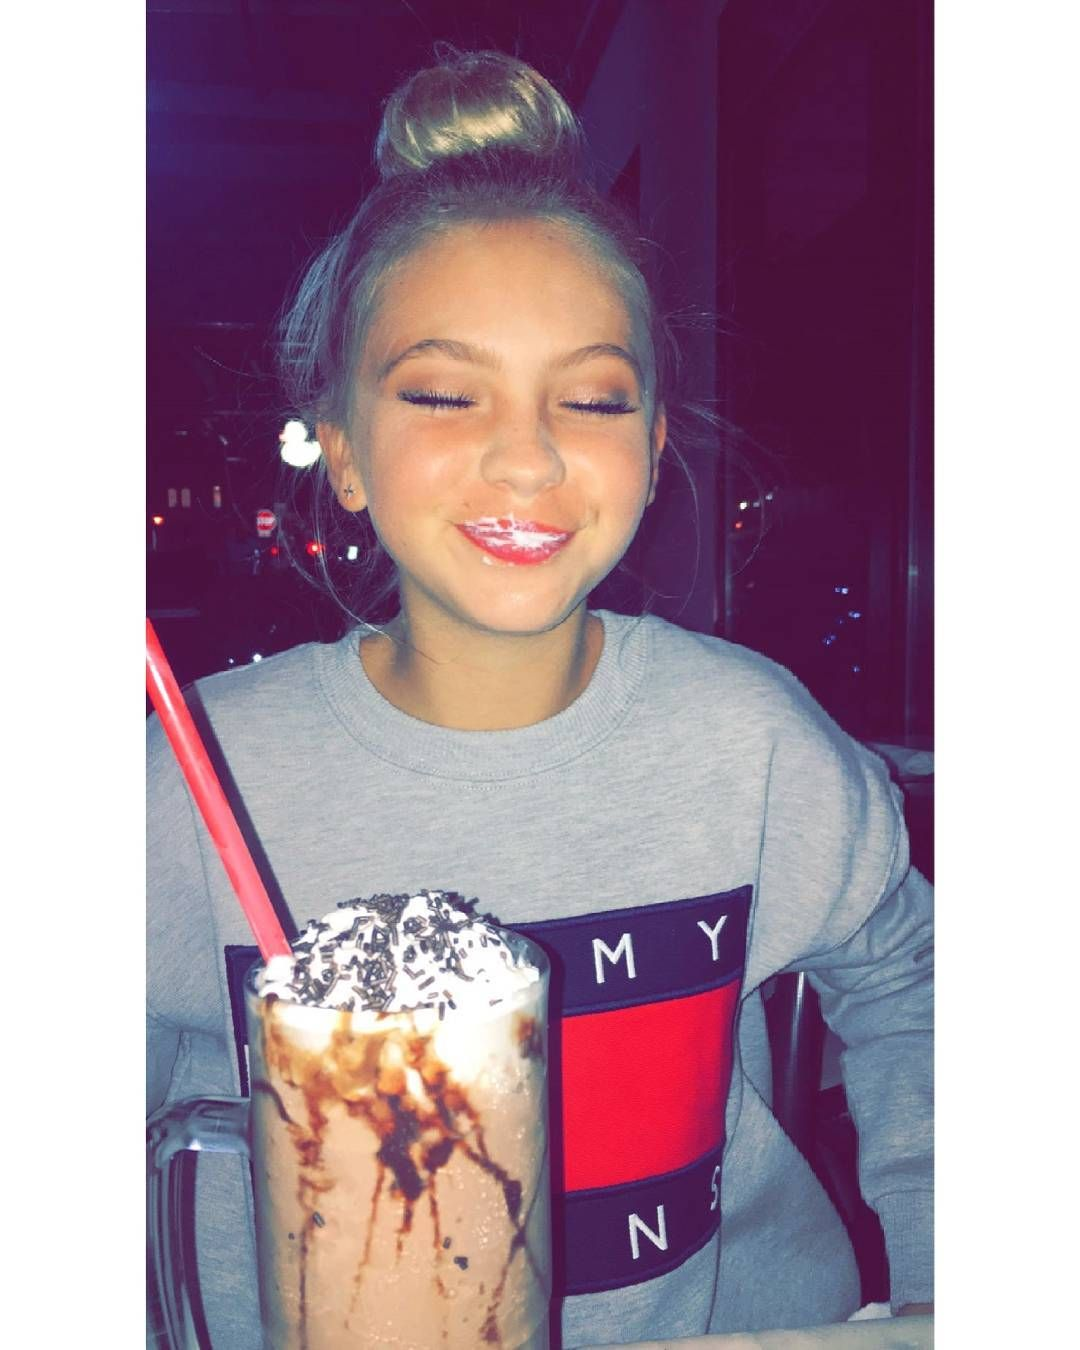 Fun Pic Of The Day Last Night In Newyorkcity Comment Your Snapchat Name More Jordynjones Sc Jordynjones Nyc